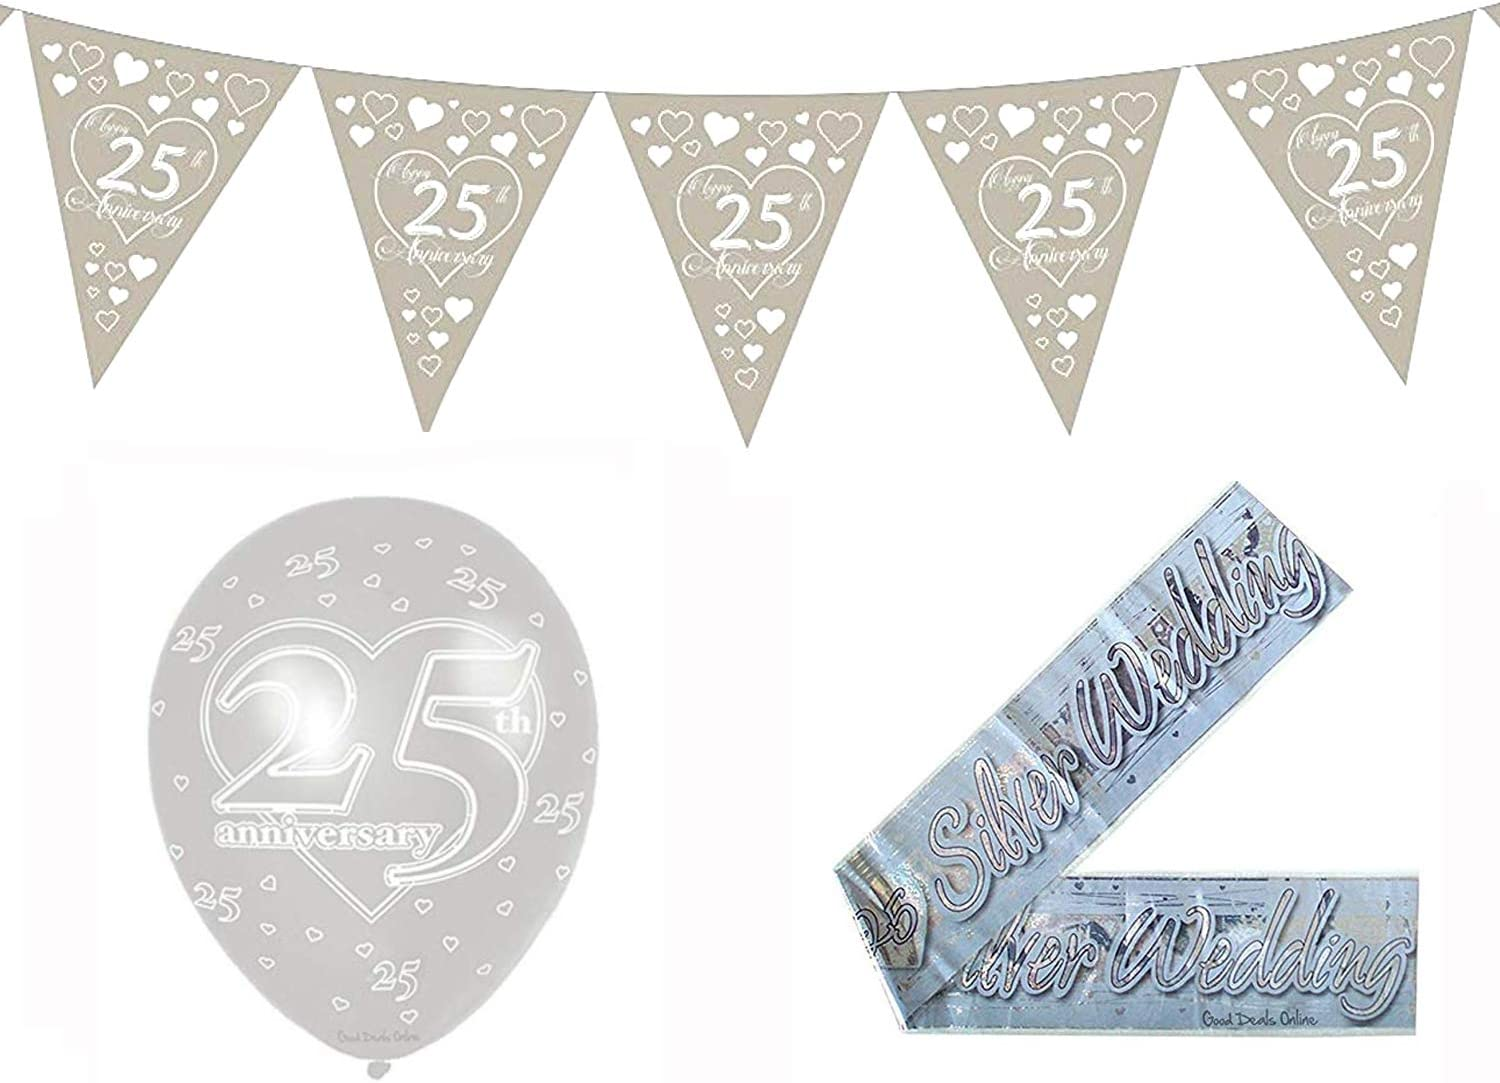 On Your Engagement Grey Hearts Bunting 15 flags  by Party Decor